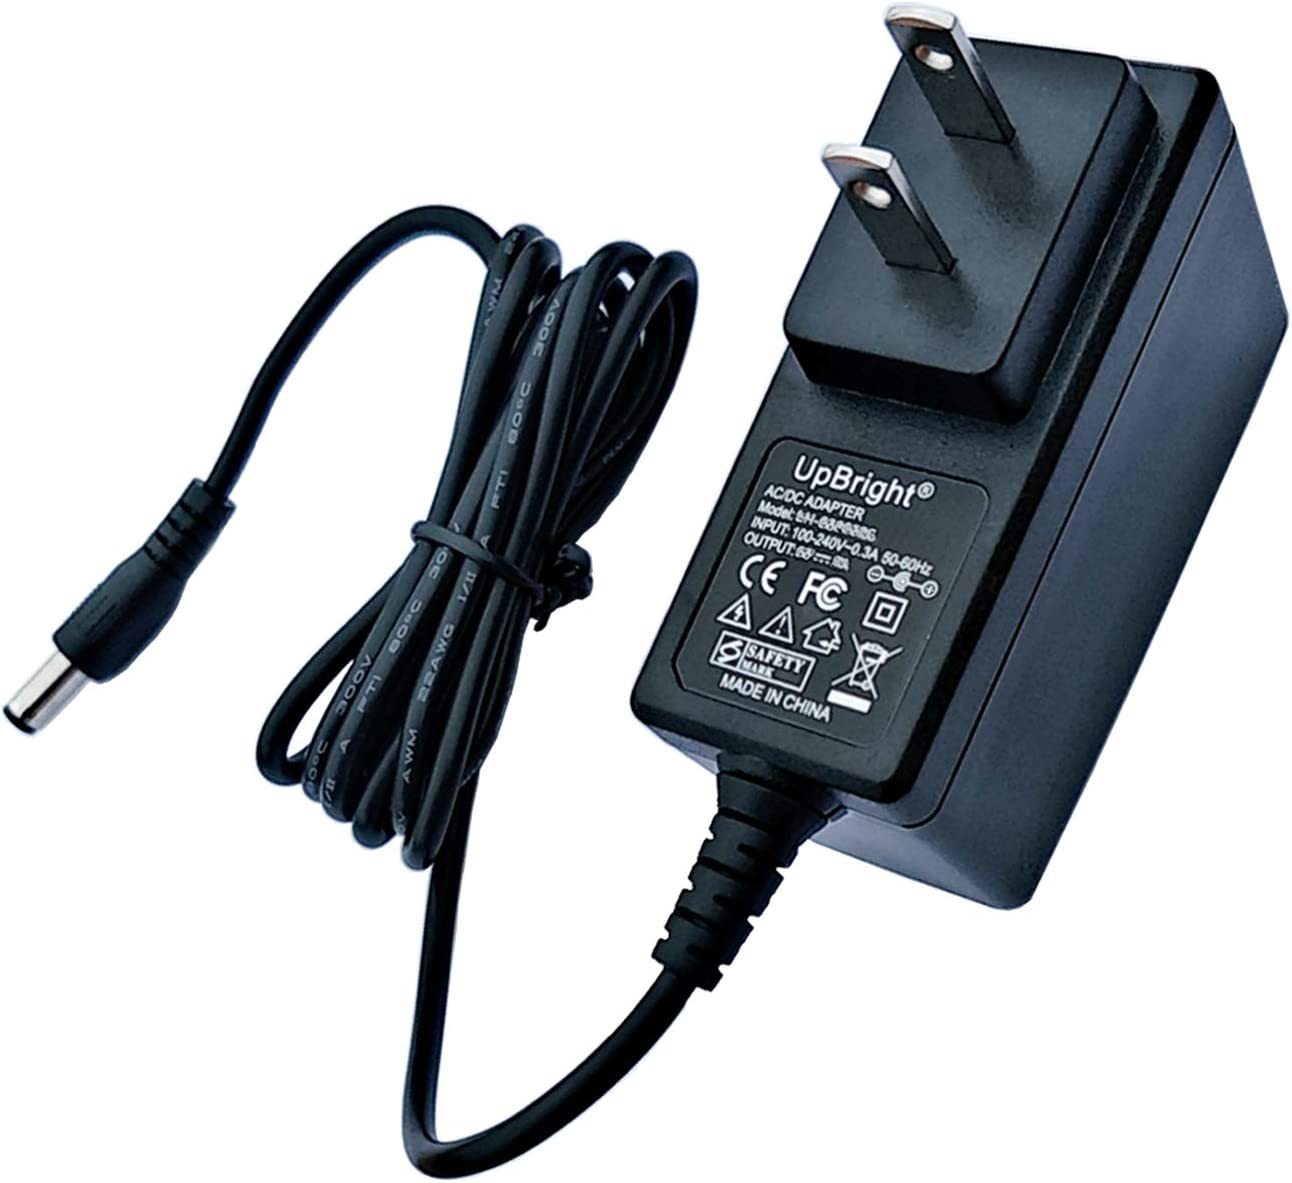 UpBright AC Adapter Compatible with Tineco iFloor FW020100US 3 iFLOOR3 FW030100US Floor One S3 FW050100US Cordless Wet Dry Vacuum Hard Floor Washer 21.6V 22.2V Li-ion Battery YLS0241A-J260080 Charger